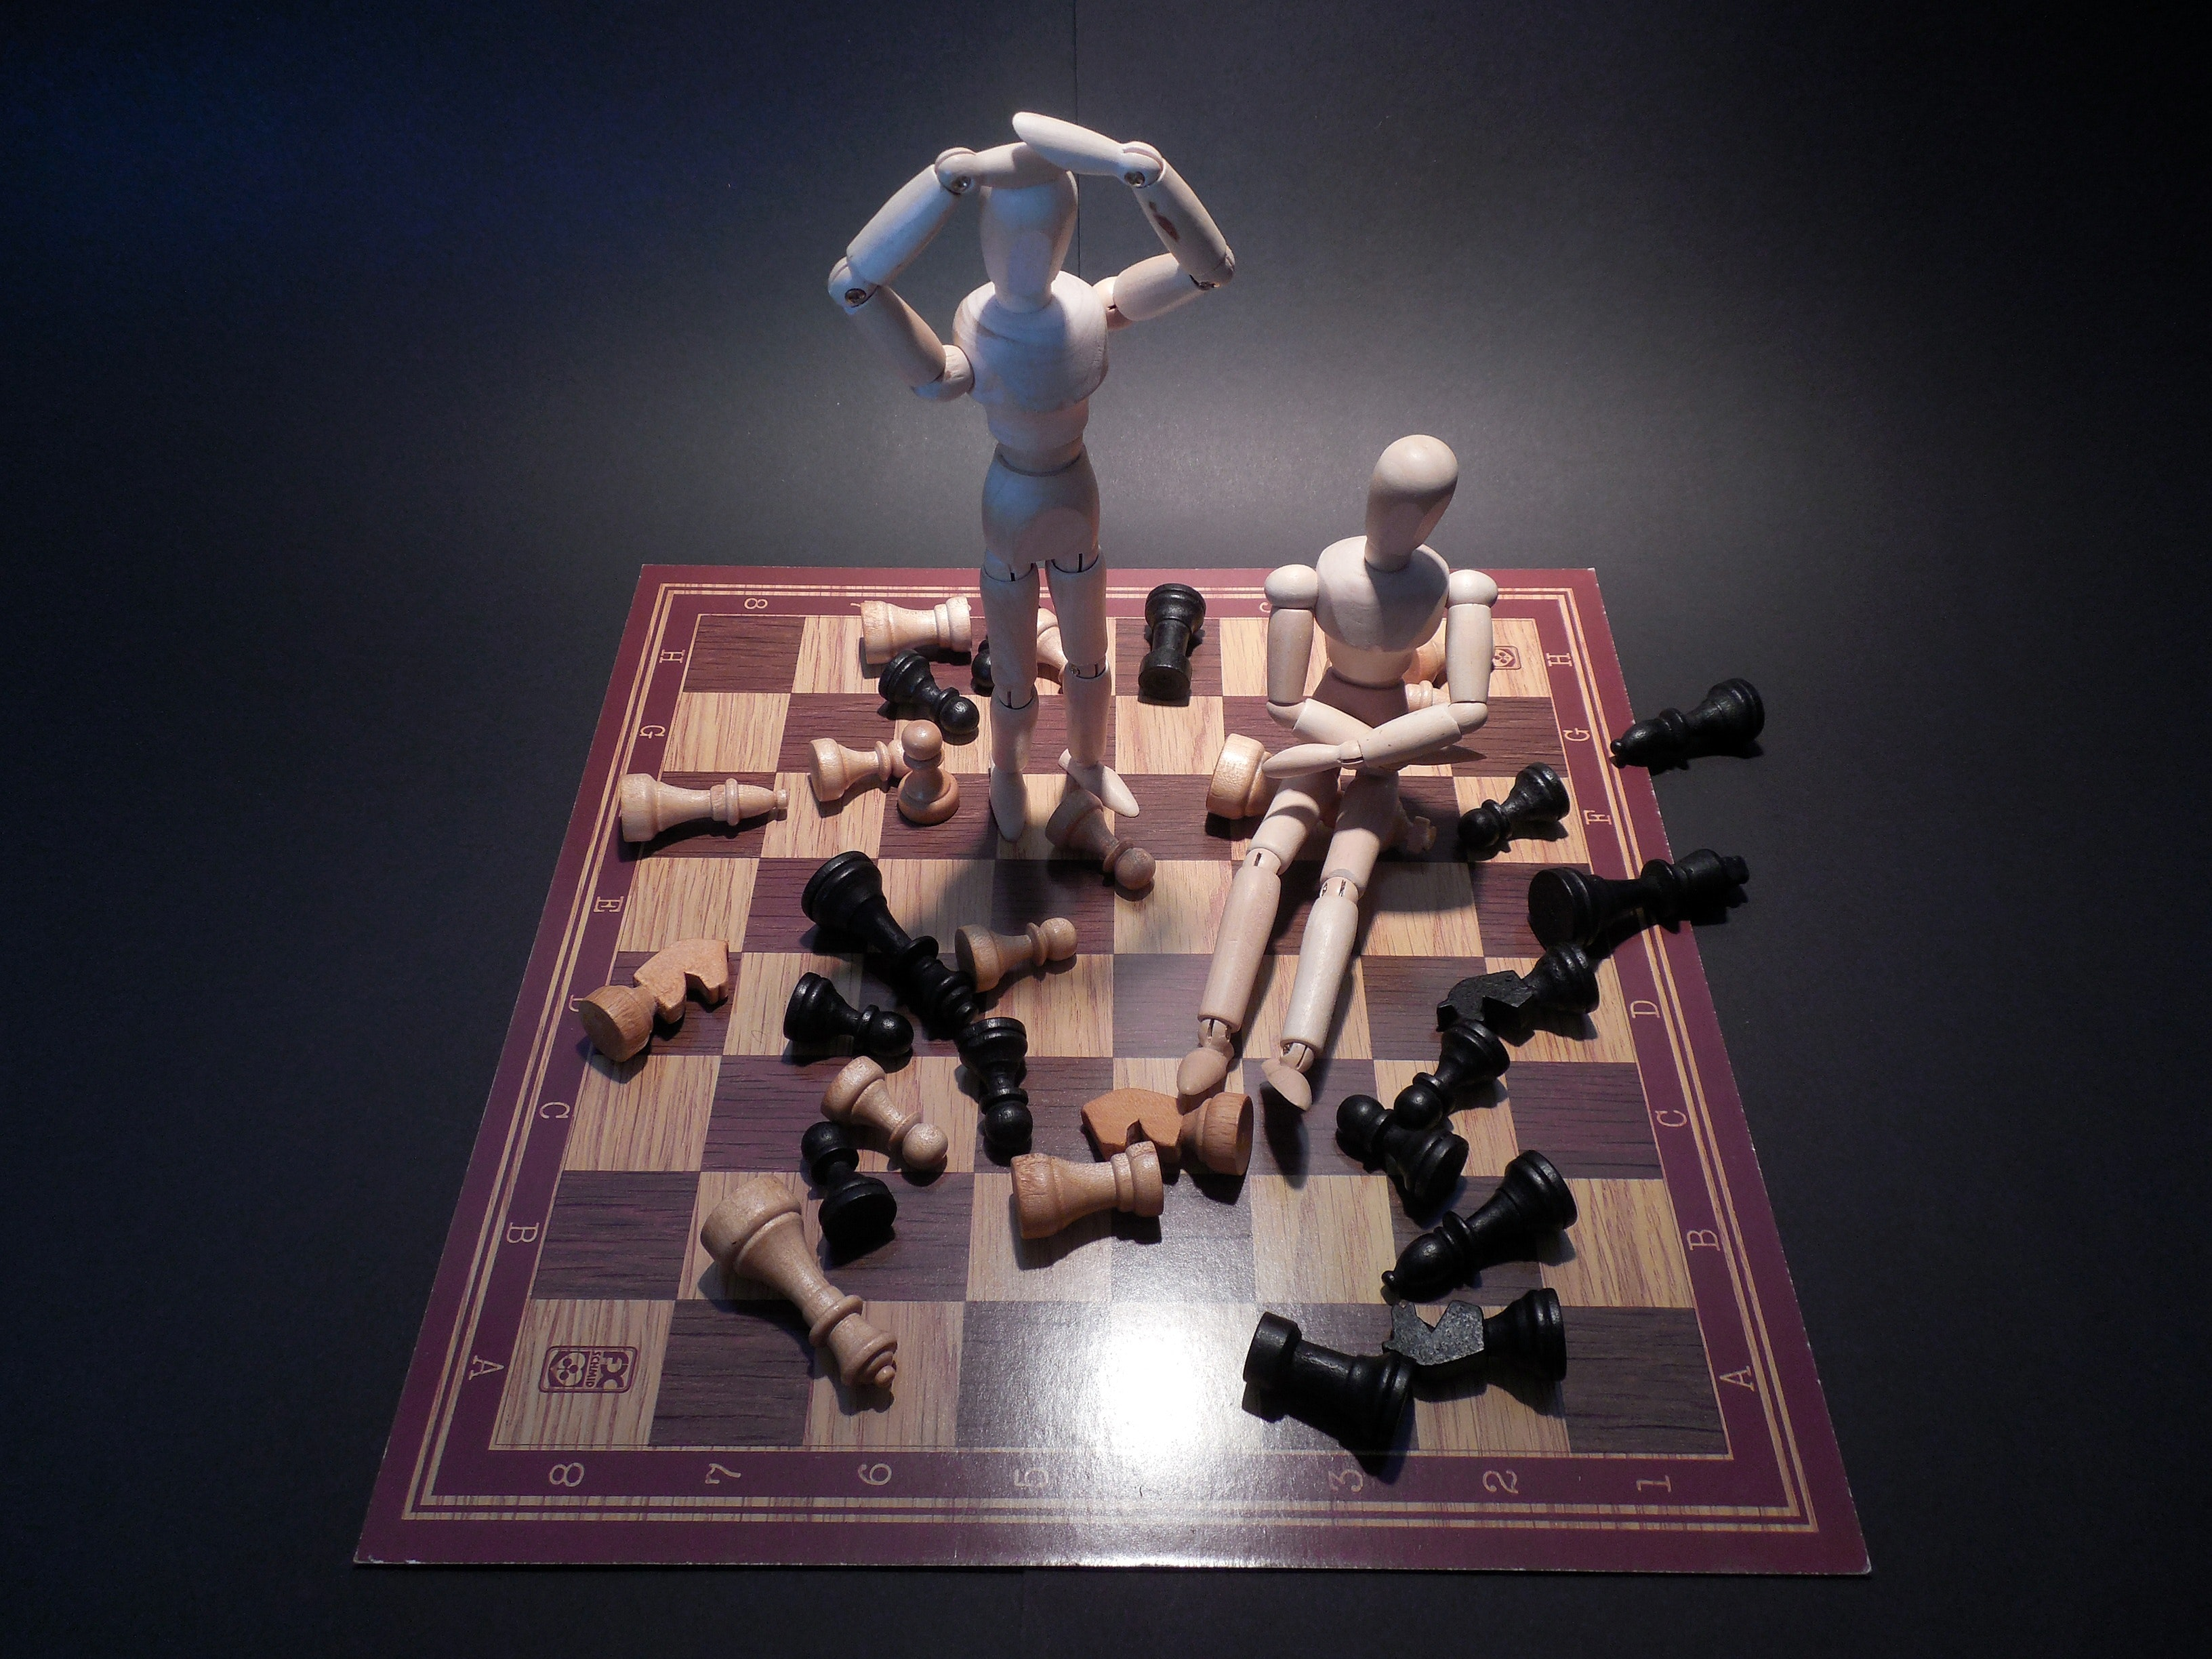 A stock photo depicting two wooden artists' mannequins on a chess board, one seated and one standing. The mannequin who is standing has its hands on its head in dismay and the chess pieces are scattered haphazardly around them both, representing autistic meltdowns in an adult. The background is black, like my soul after dealing with neurotypical douchebags.